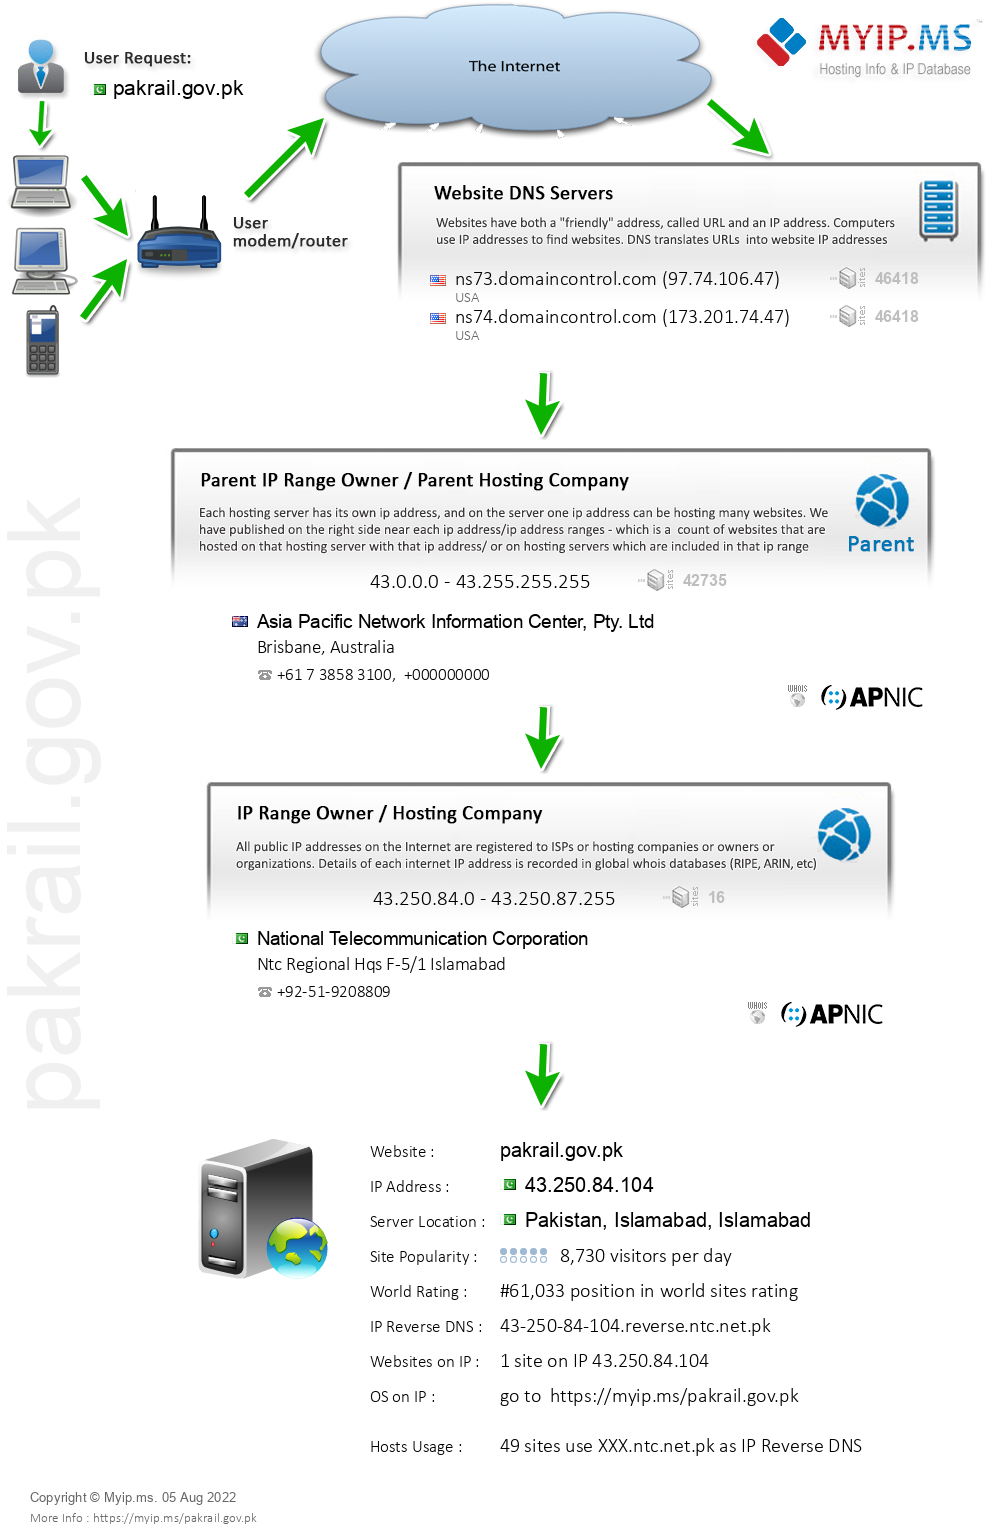 Pakrail.gov.pk - Website Hosting Visual IP Diagram